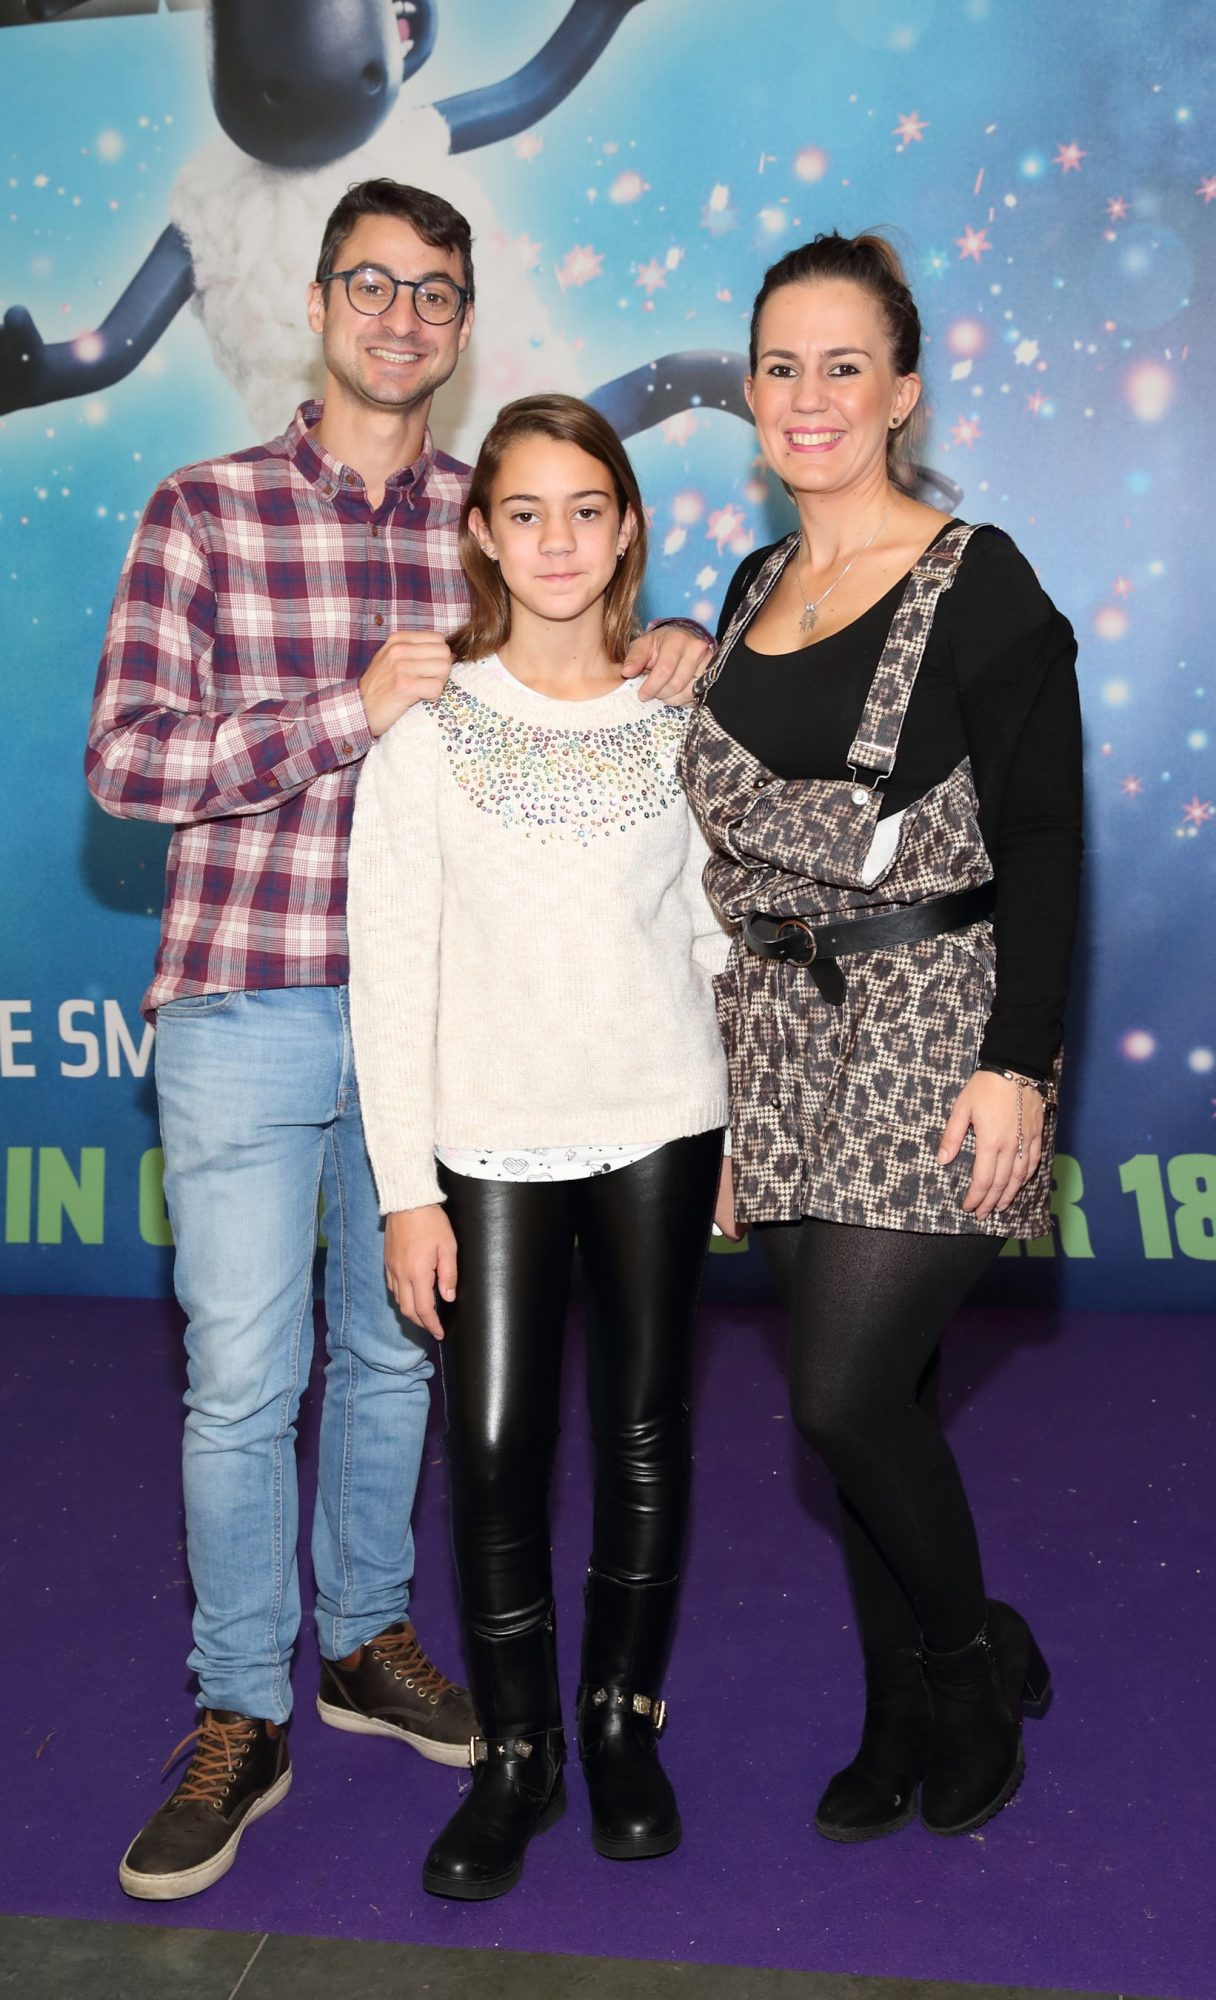 Jose Moreno, Zaira Moreno and Lidia Moreno at the special preview screening of Shaun the Sheep at the Odeon Cinema In Point Square, Dublin.  Pic: Brian McEvoy Photography